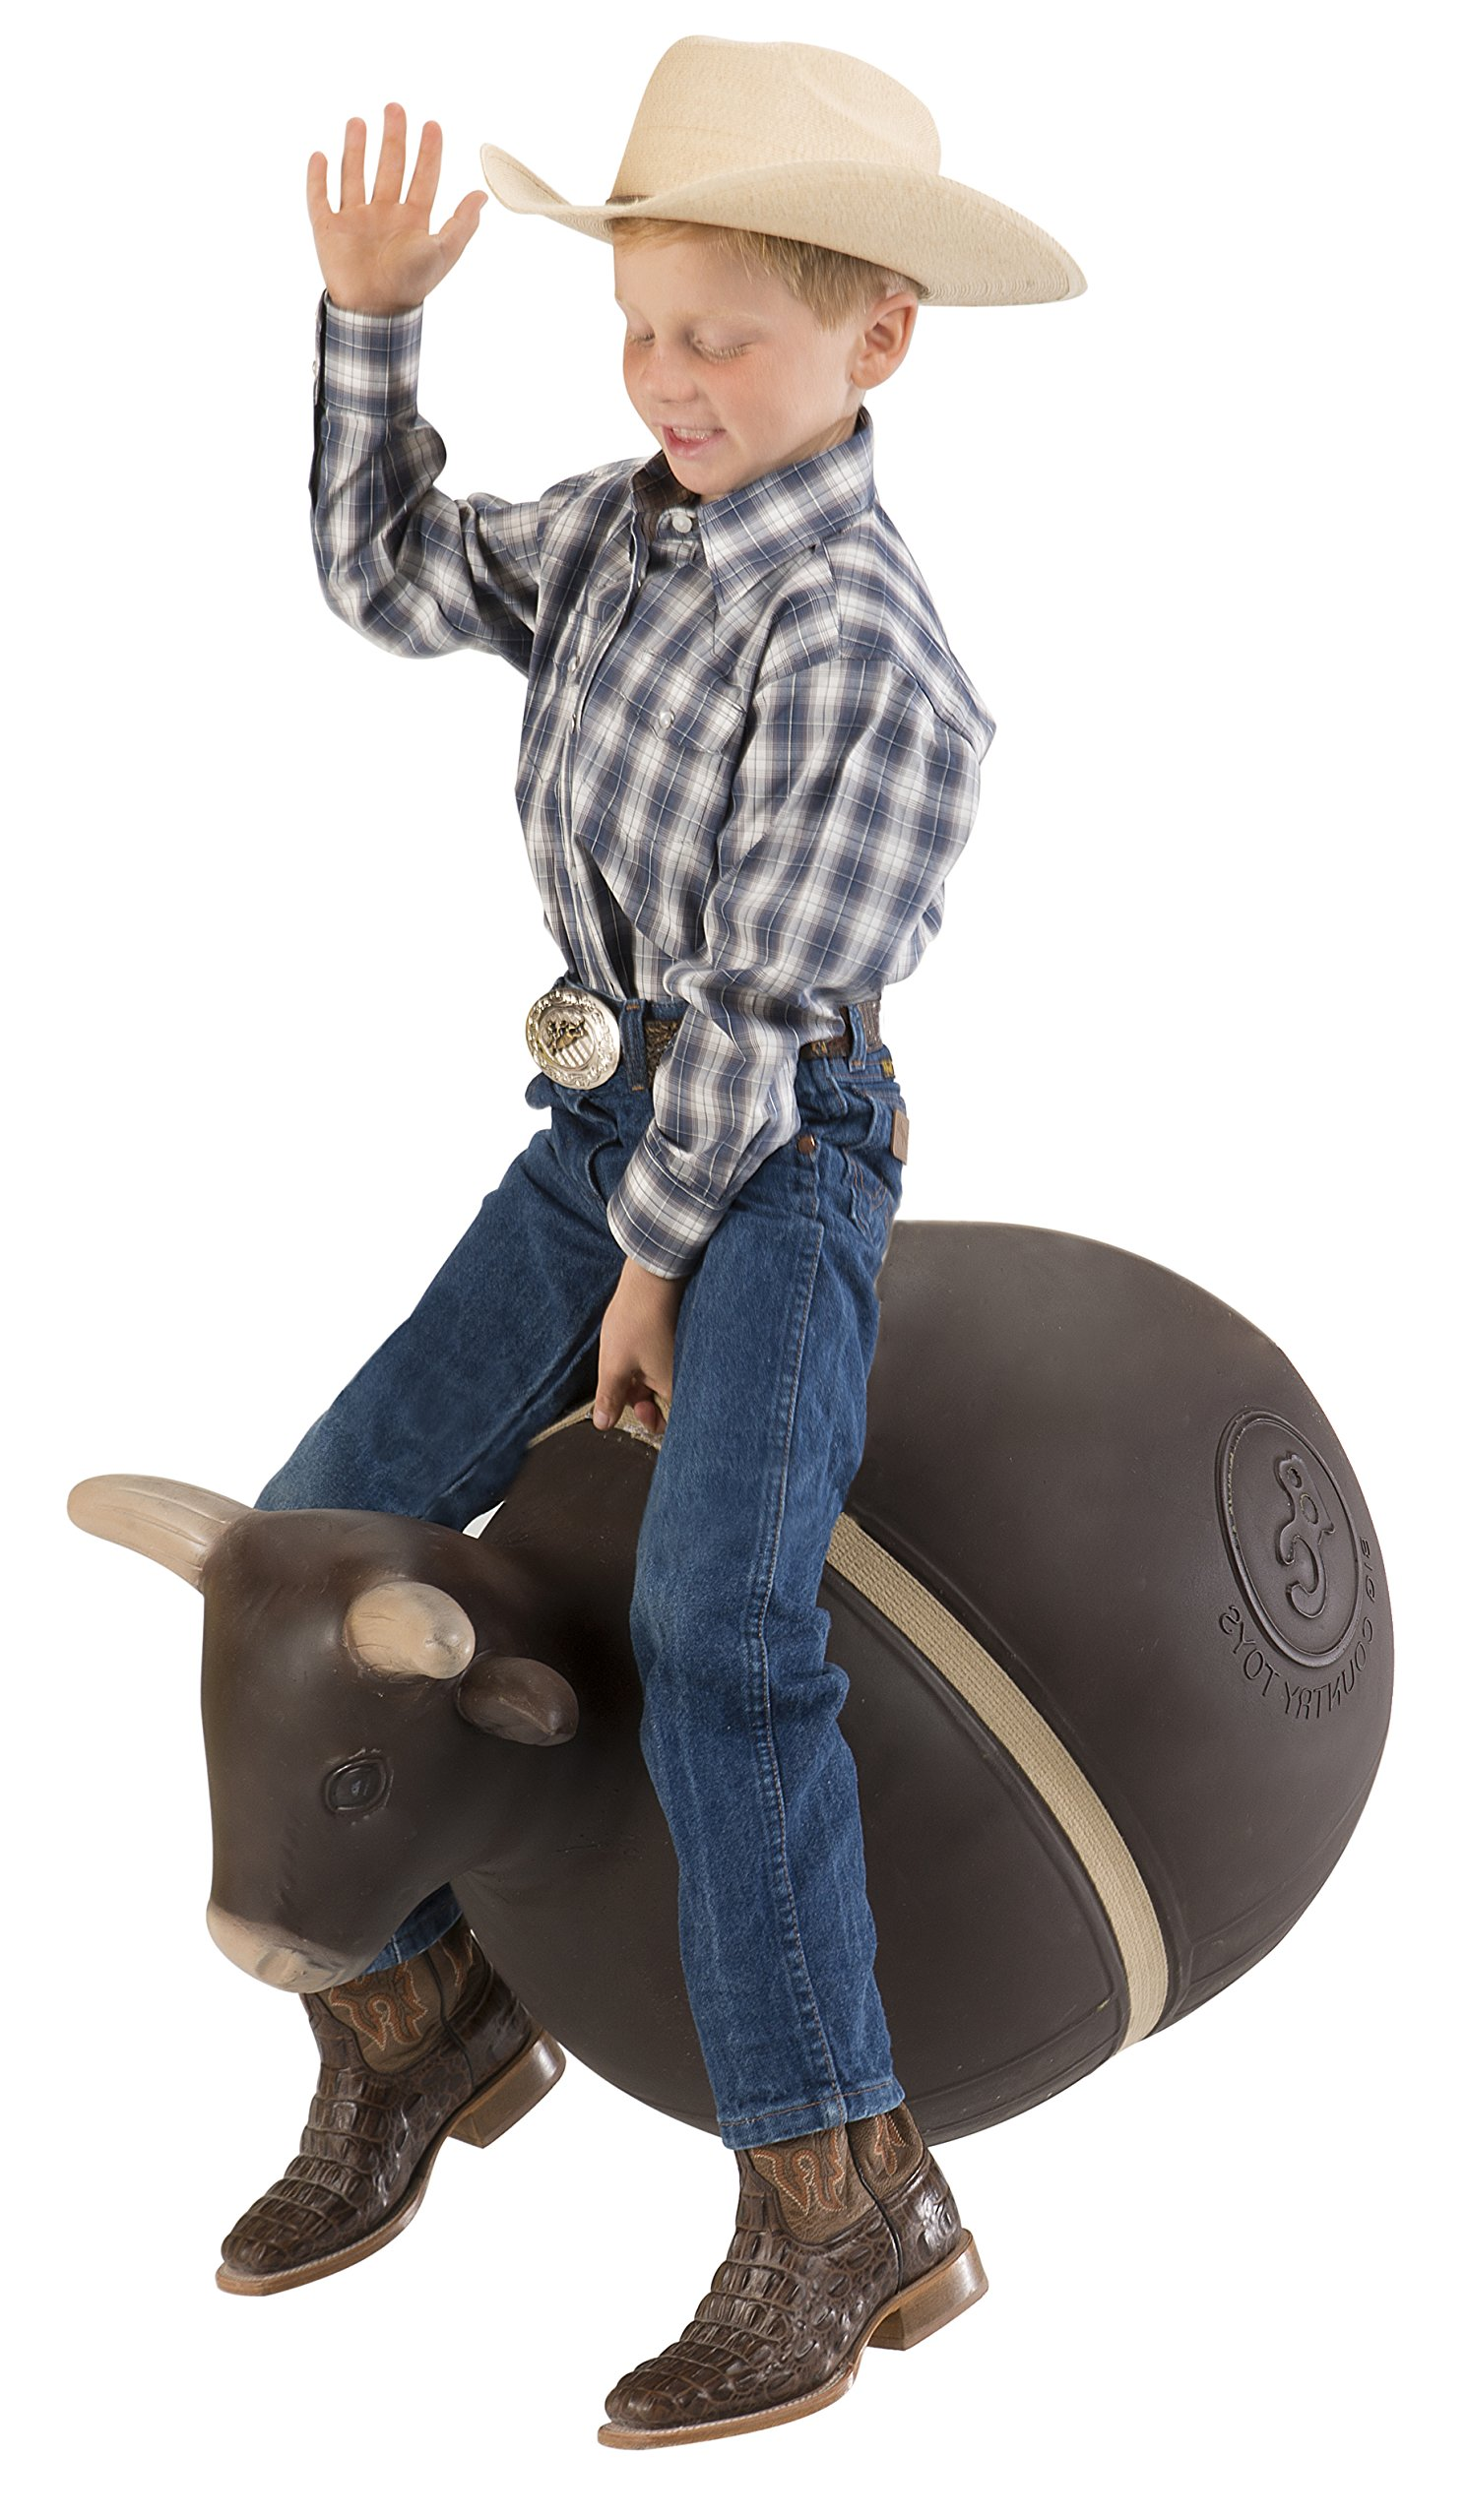 Big Country Toys Bouncy Bull - Kids Hopper Toys - Bull Riding & Rodeo Toys - Inflatable Ball with Handle